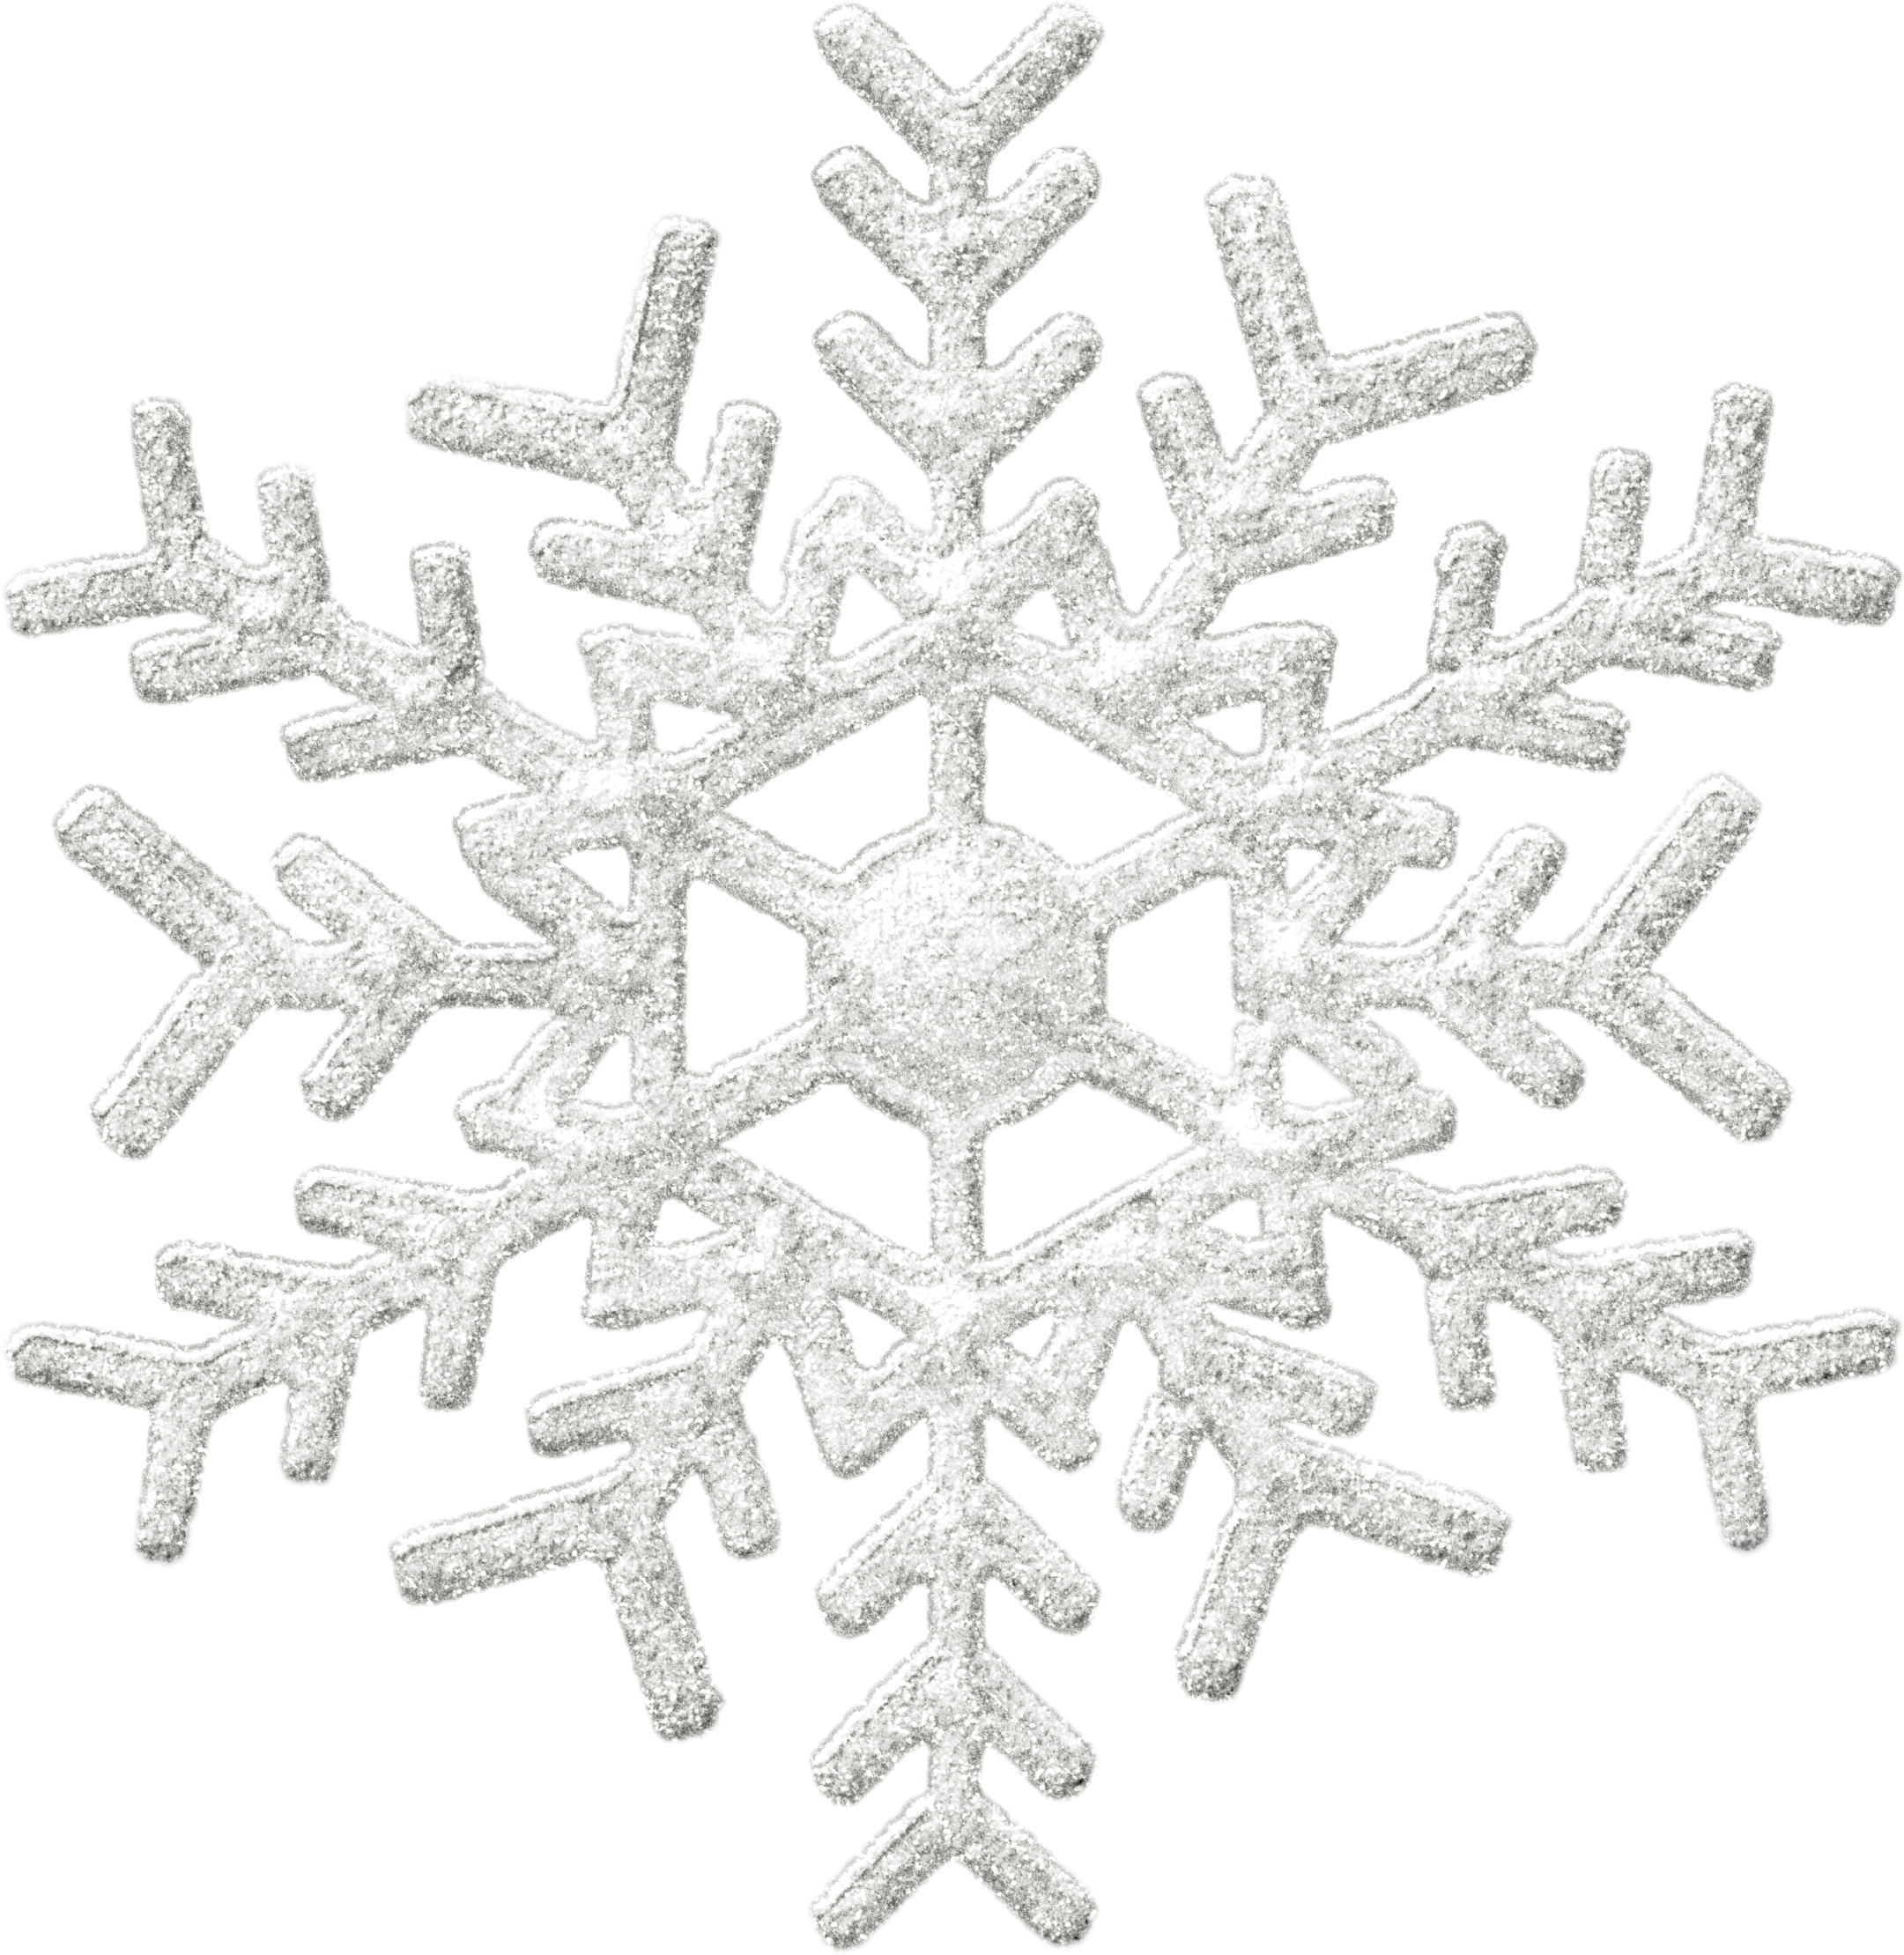 Snowy Snowflake Winter PNG Image